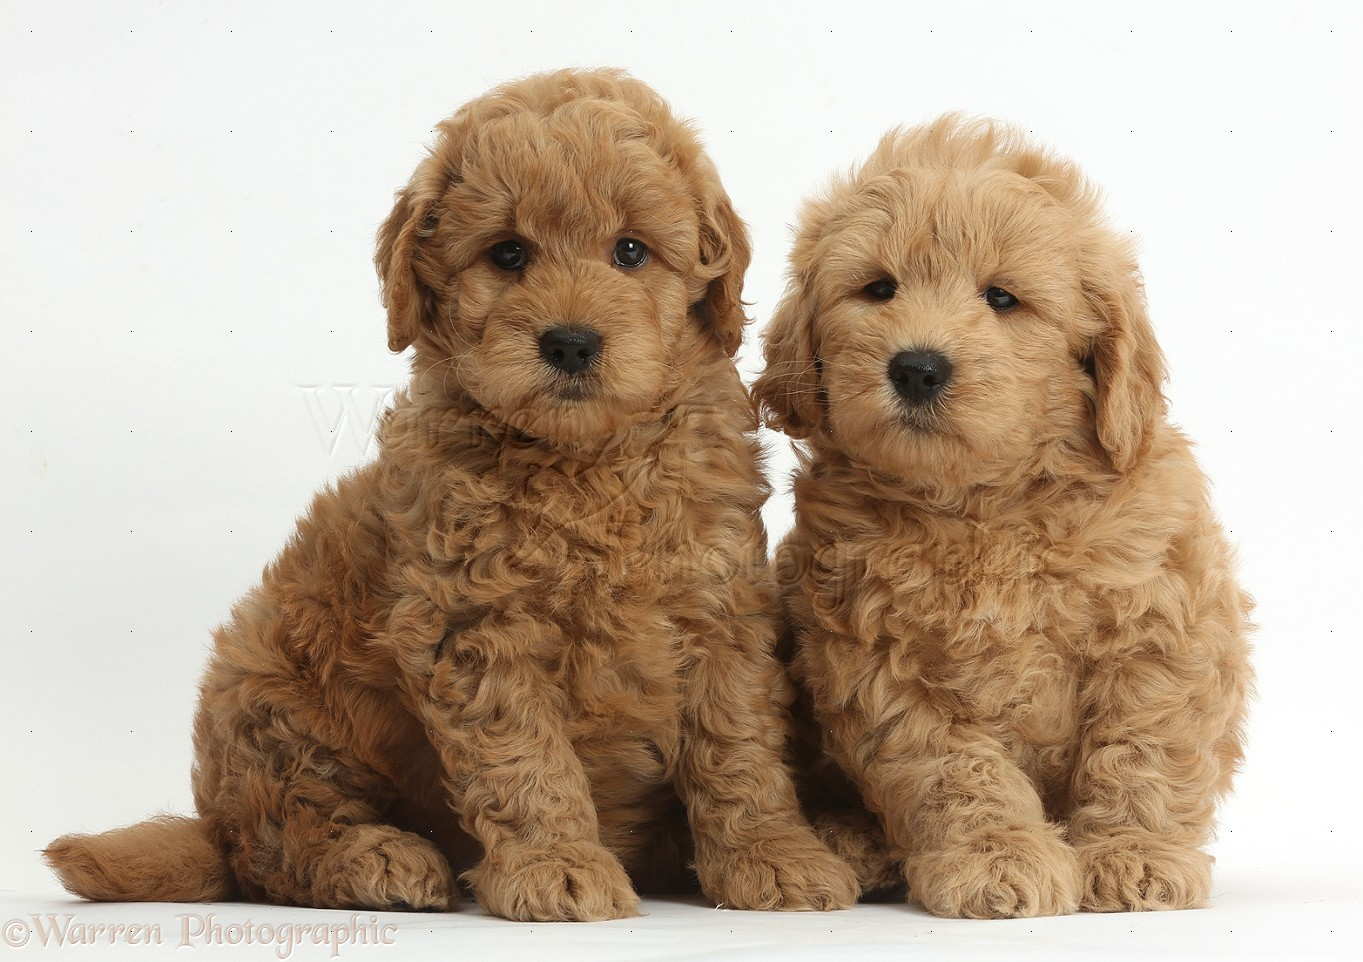 Cute Dog Pictures Of Golden Doodle